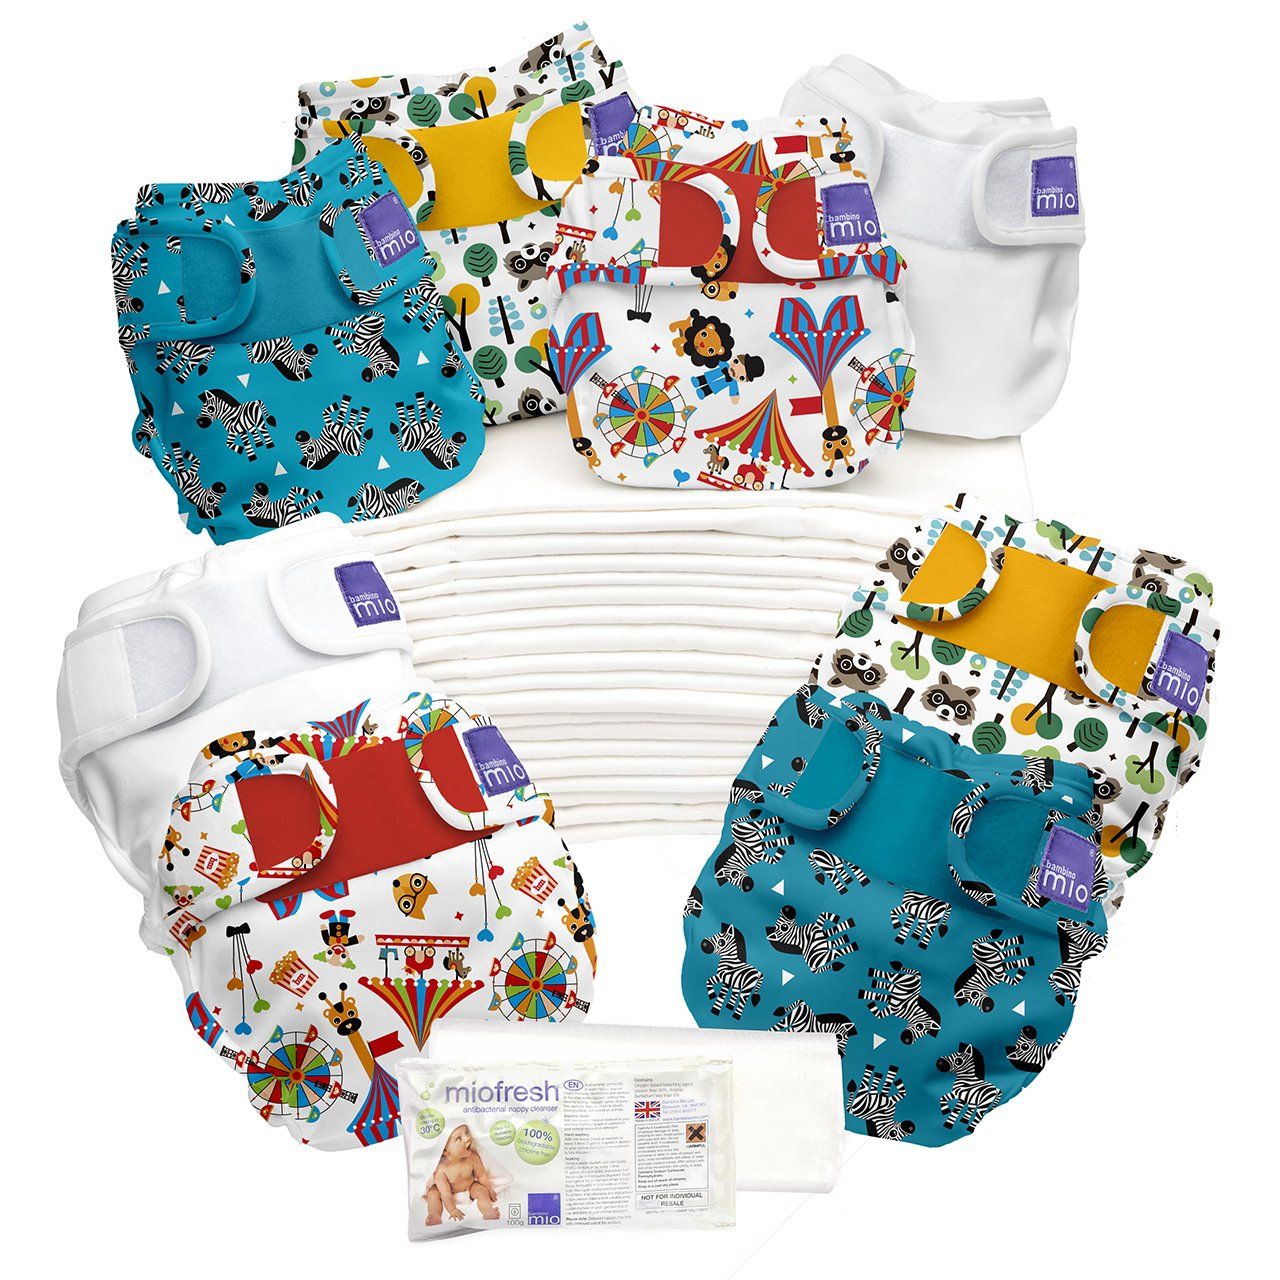 Bambino Mio Miosoft Birth to Potty Pack, Dream Traveller Bambino Mio UK BTPMS DT